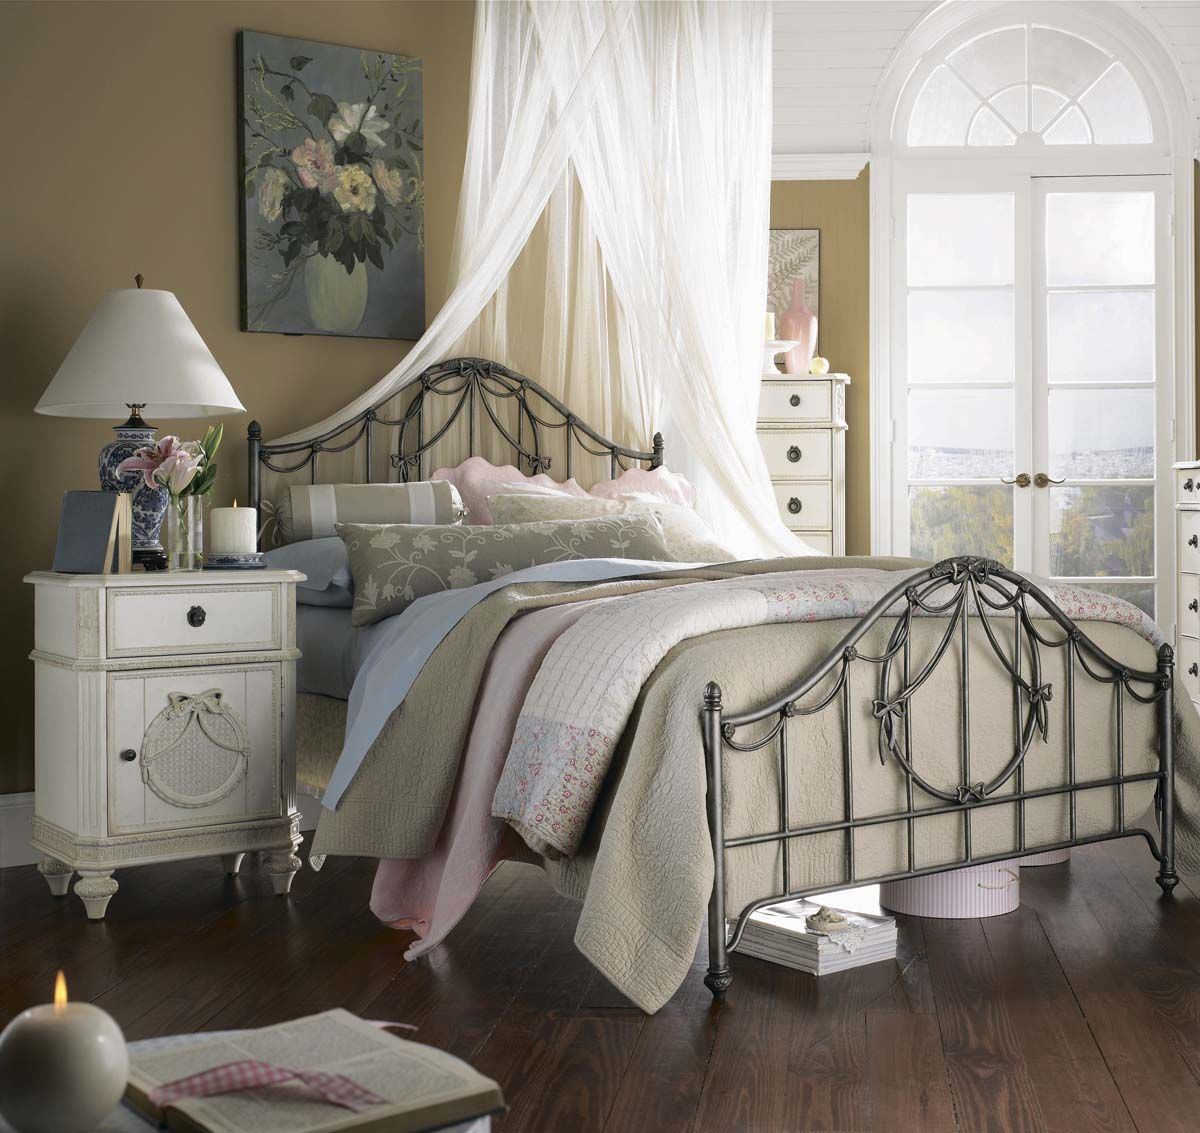 5 Vintage Bedroom Sets Ideas for 2015. 5 Vintage Bedroom Sets Ideas for 2015   Vintage bedrooms  Bedrooms